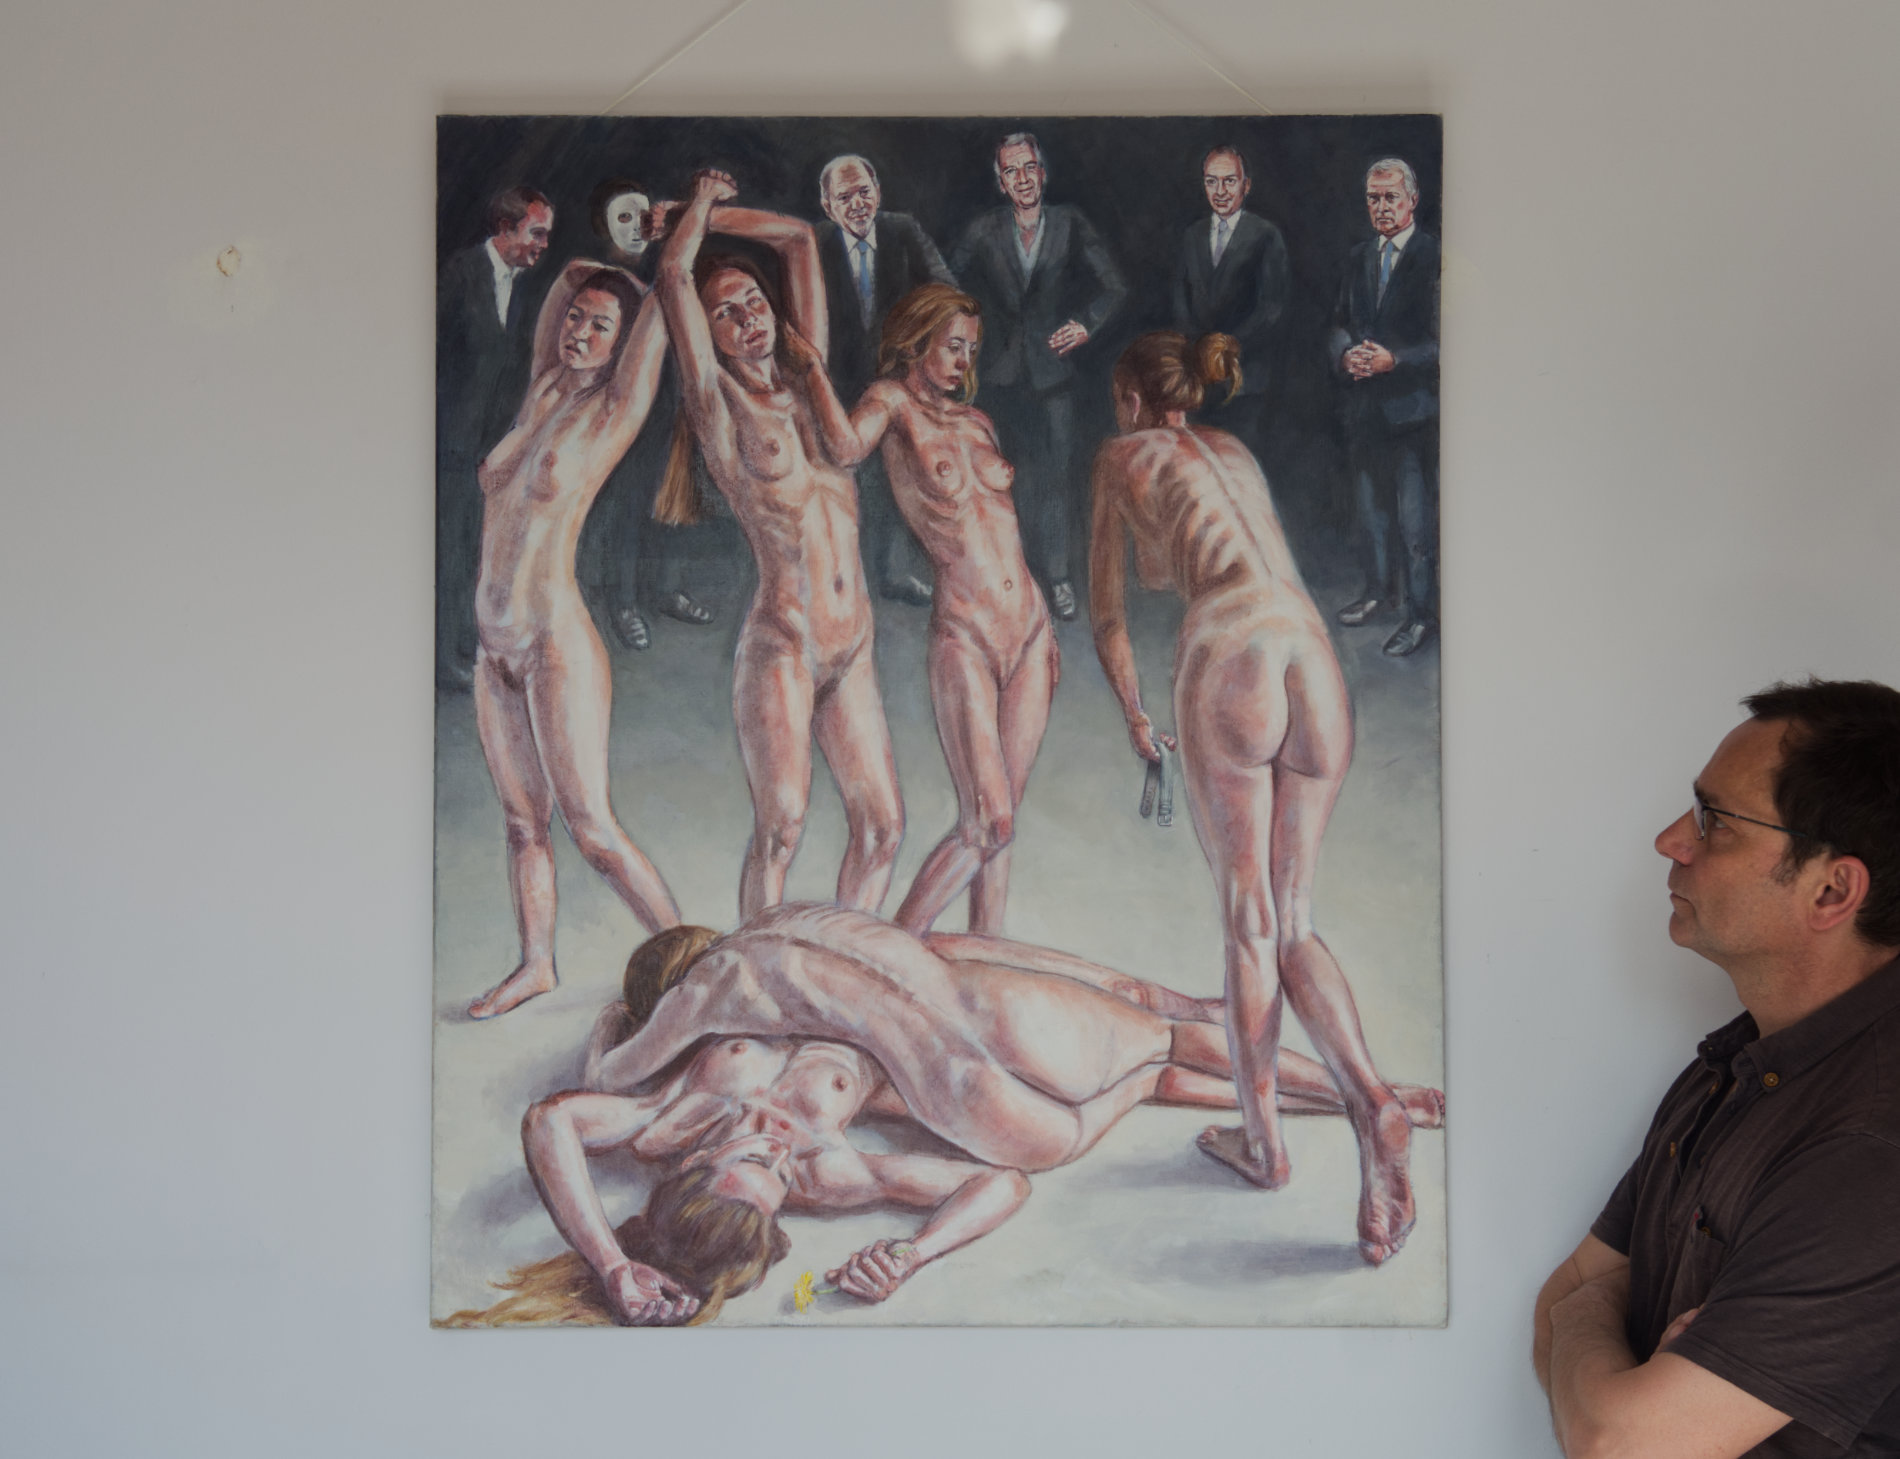 Men in suits. a painting about the male gaze